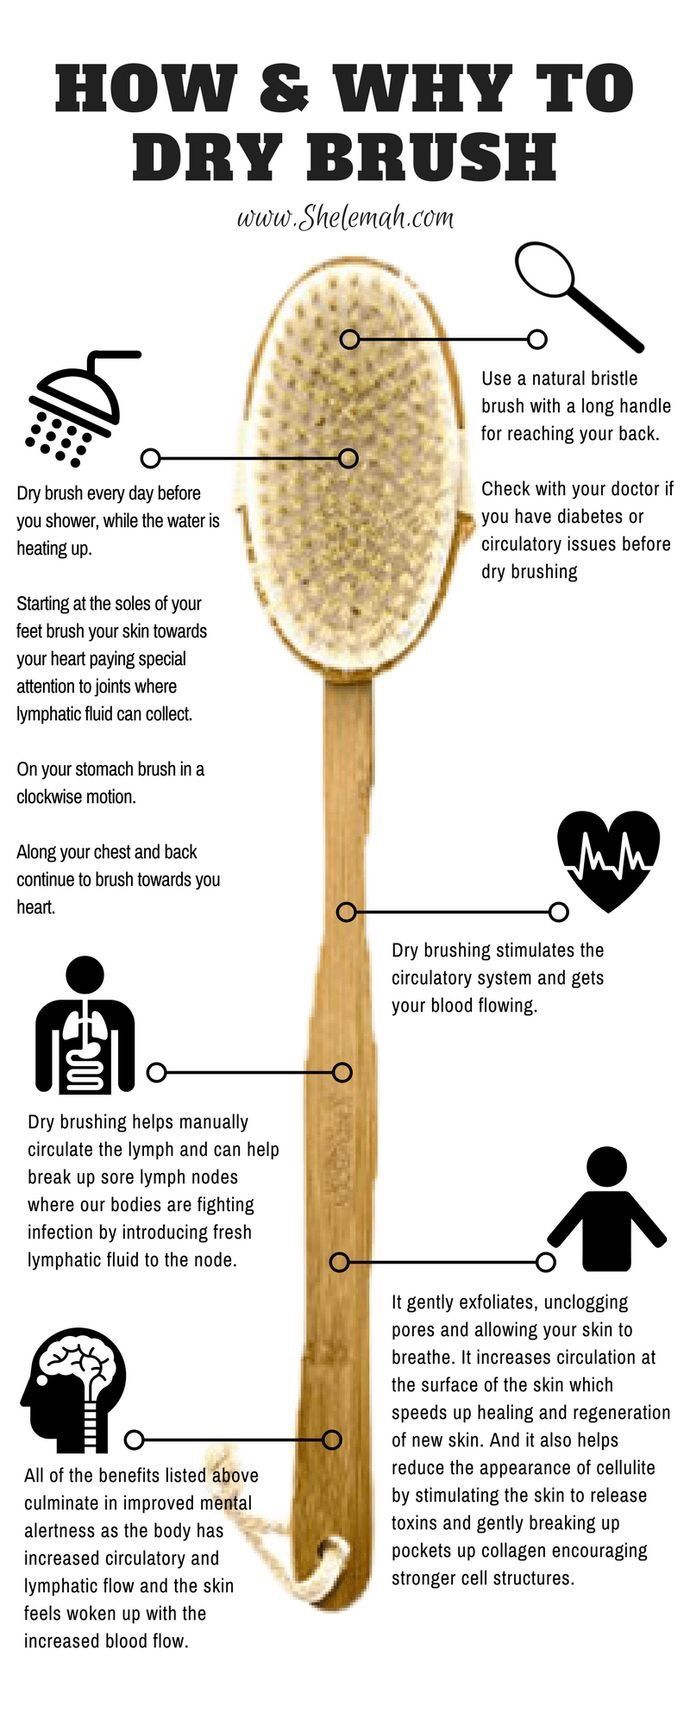 Benefits Of Dry Brushing Exfoliates The Skin By Removing Dead Skin Cells Assist In The Rem Natural Skin Care Routine Skin Care Treatments Health Practices